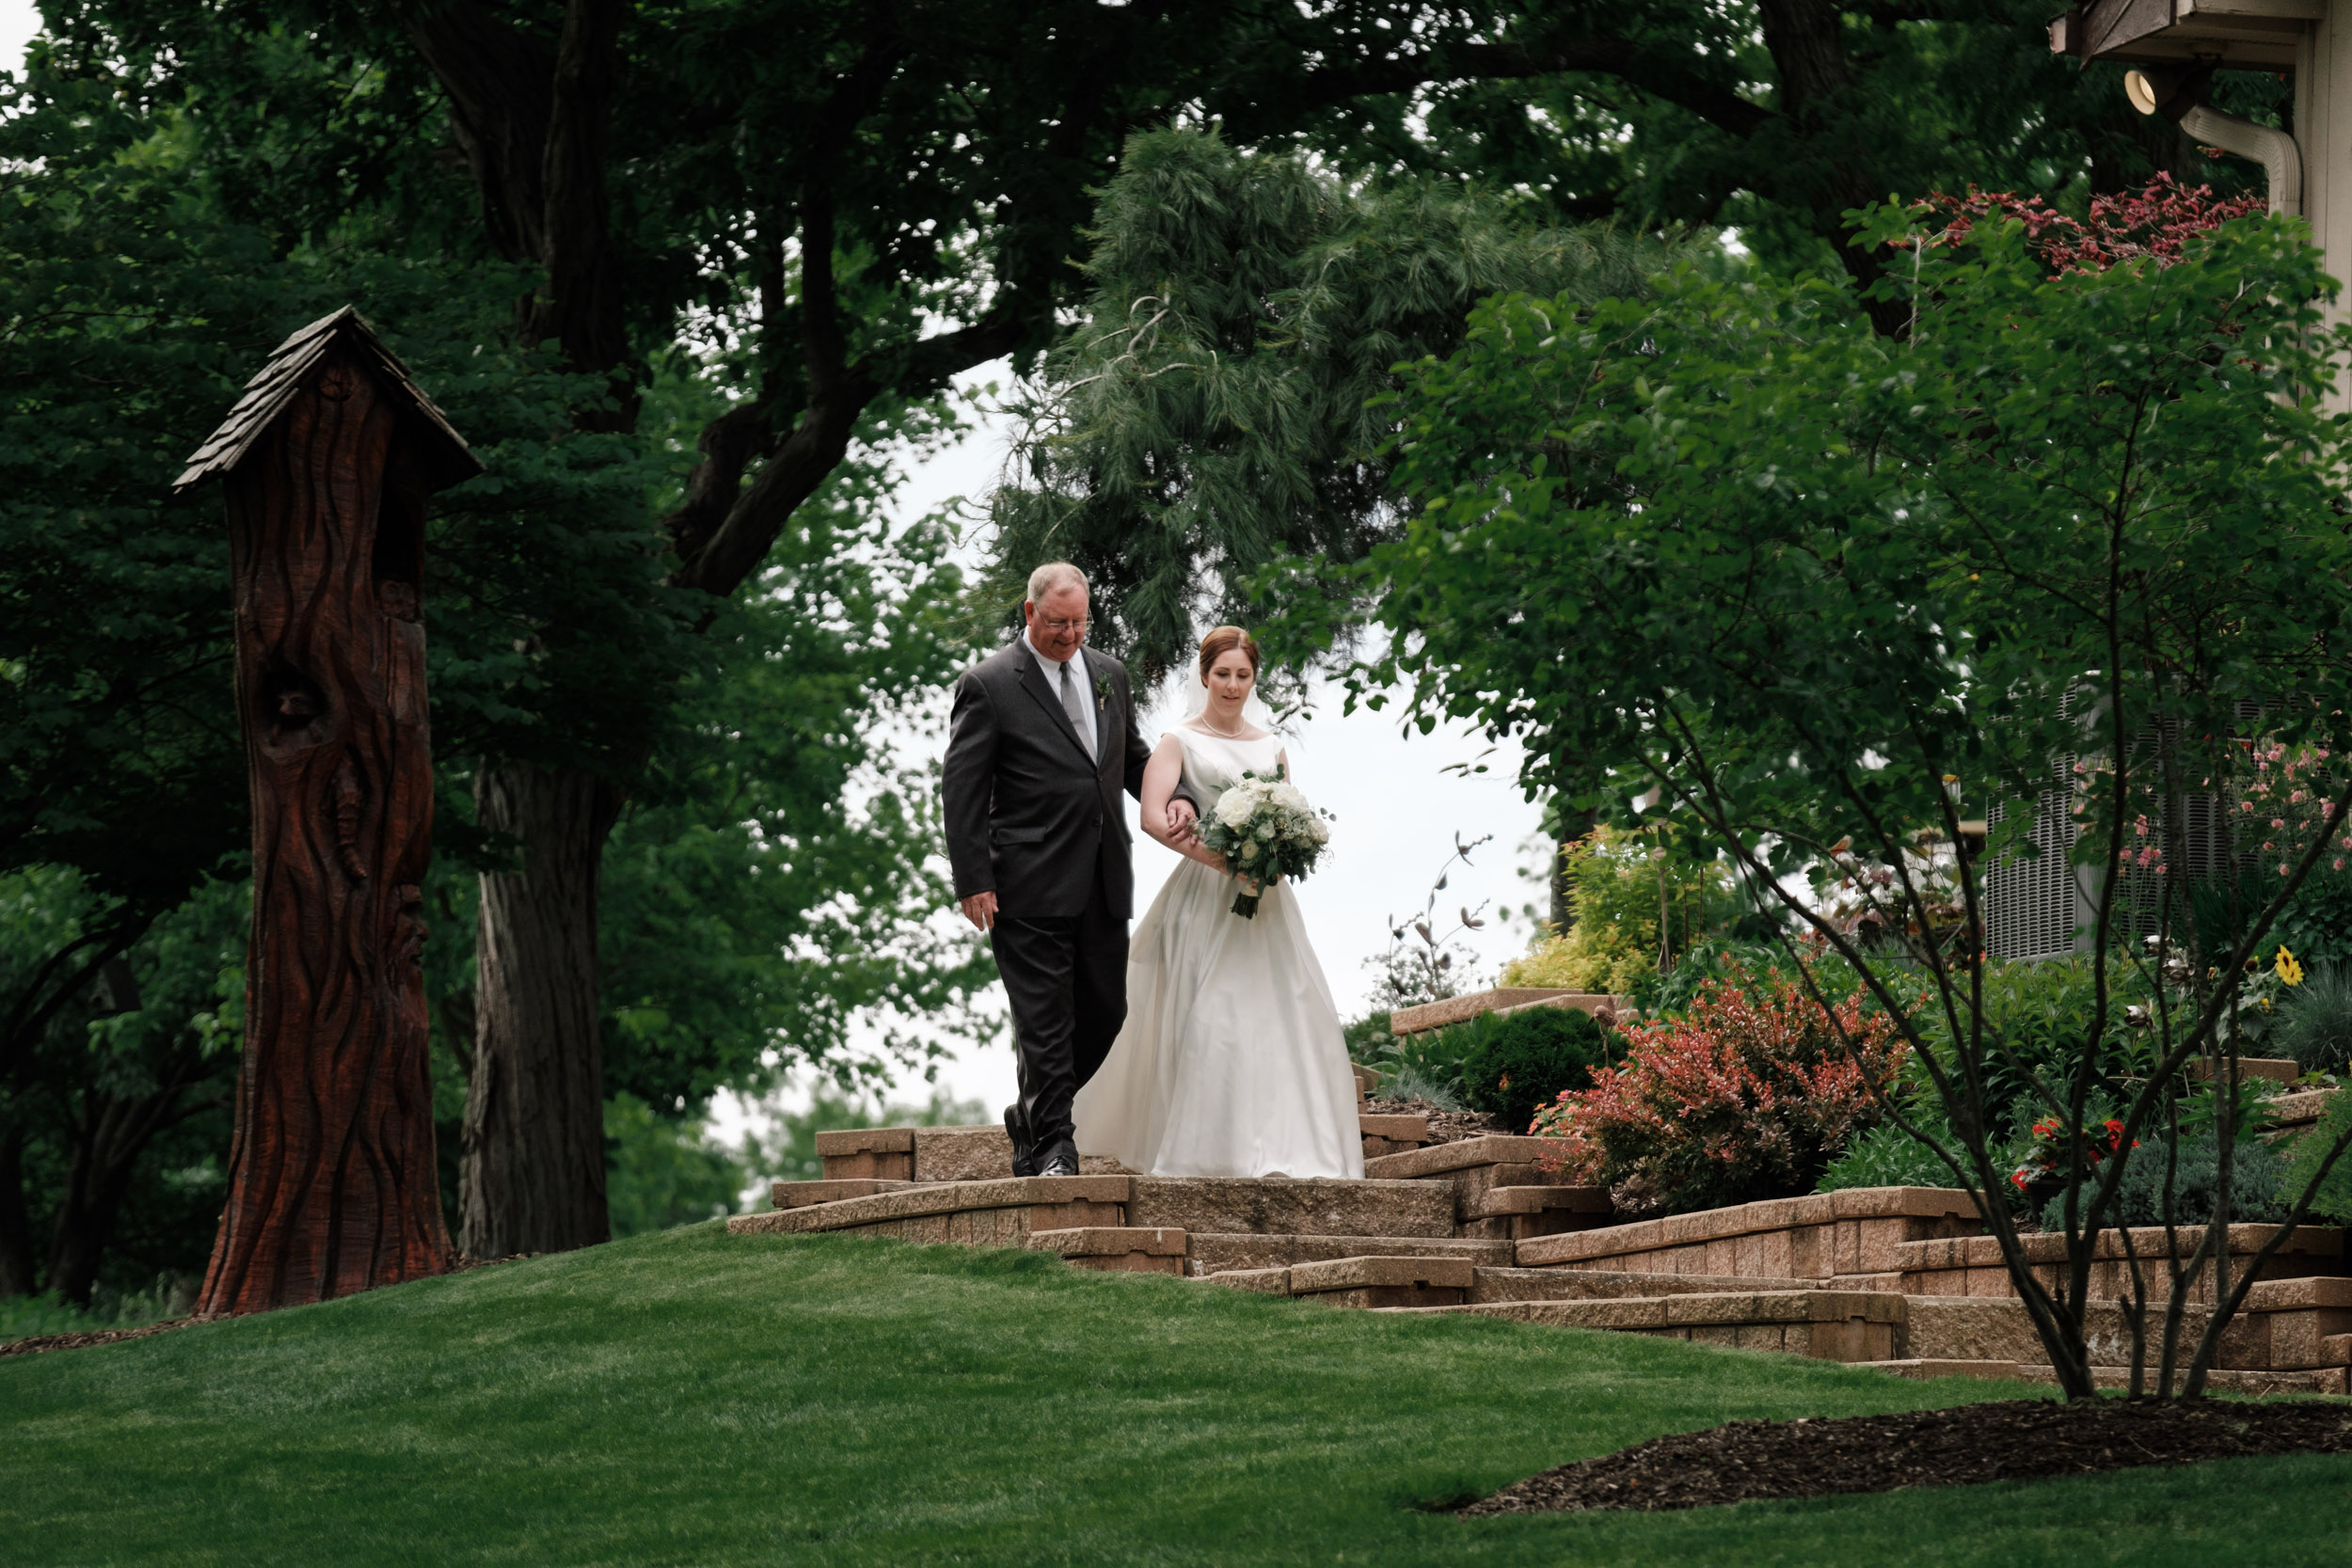 19-06-08 Liz-Mike-Belvidere-Backyard-Wedding-39.jpg